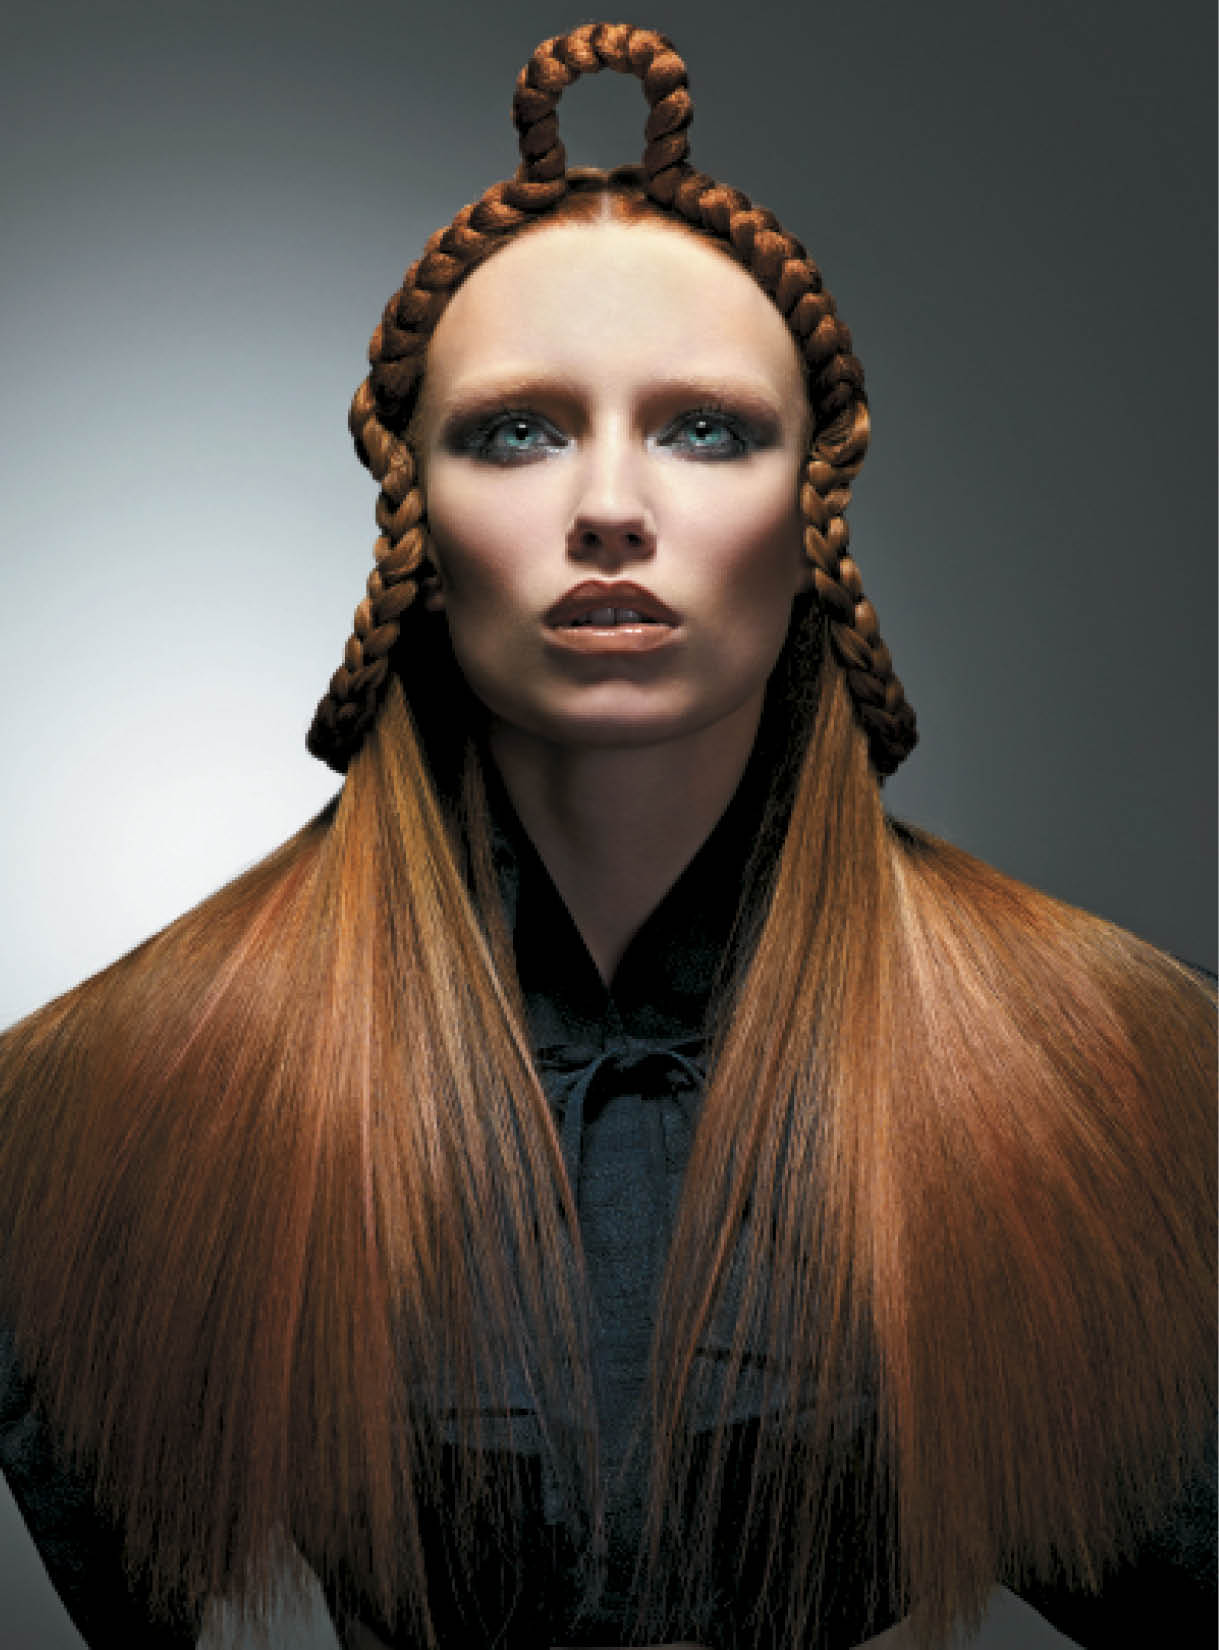 To give a texture effect with color, Baek used a soft pink highlight on top of copper. To style, he plaited the hair from the back, leaving some sections at the front. Next he used pins to secure the plaits into the desired shape, and ran a flat-iron through the underneath section. To finish, he applied Tecni.Art Liss Control and Deviation Paste to give shine and hold.